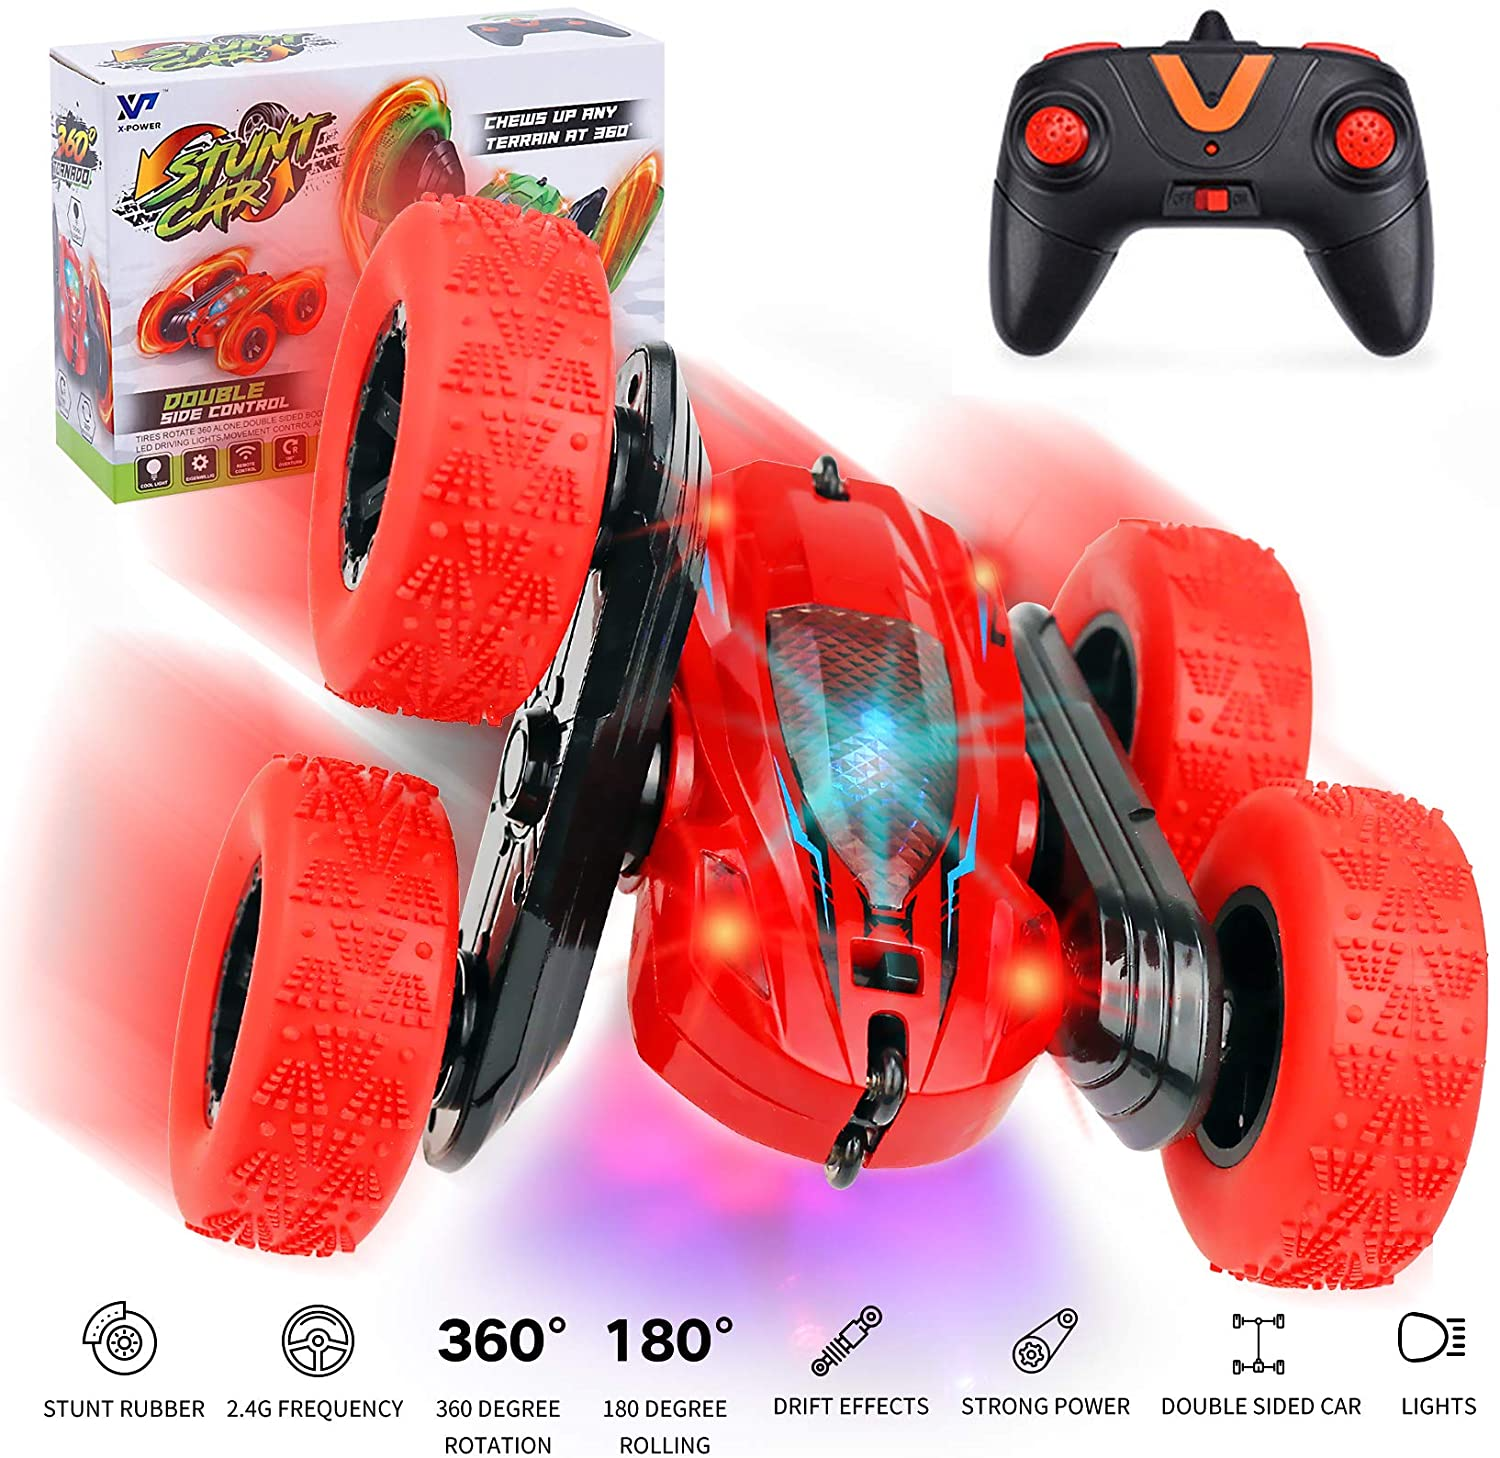 TANOKAY RC Stunt Car, Remote Control Racing Car 4WD Double Sided 360° Rotating Spins and Flips with Multicolored LED Lights Driving Cars Toys Gifts for Kids, Boys, Men